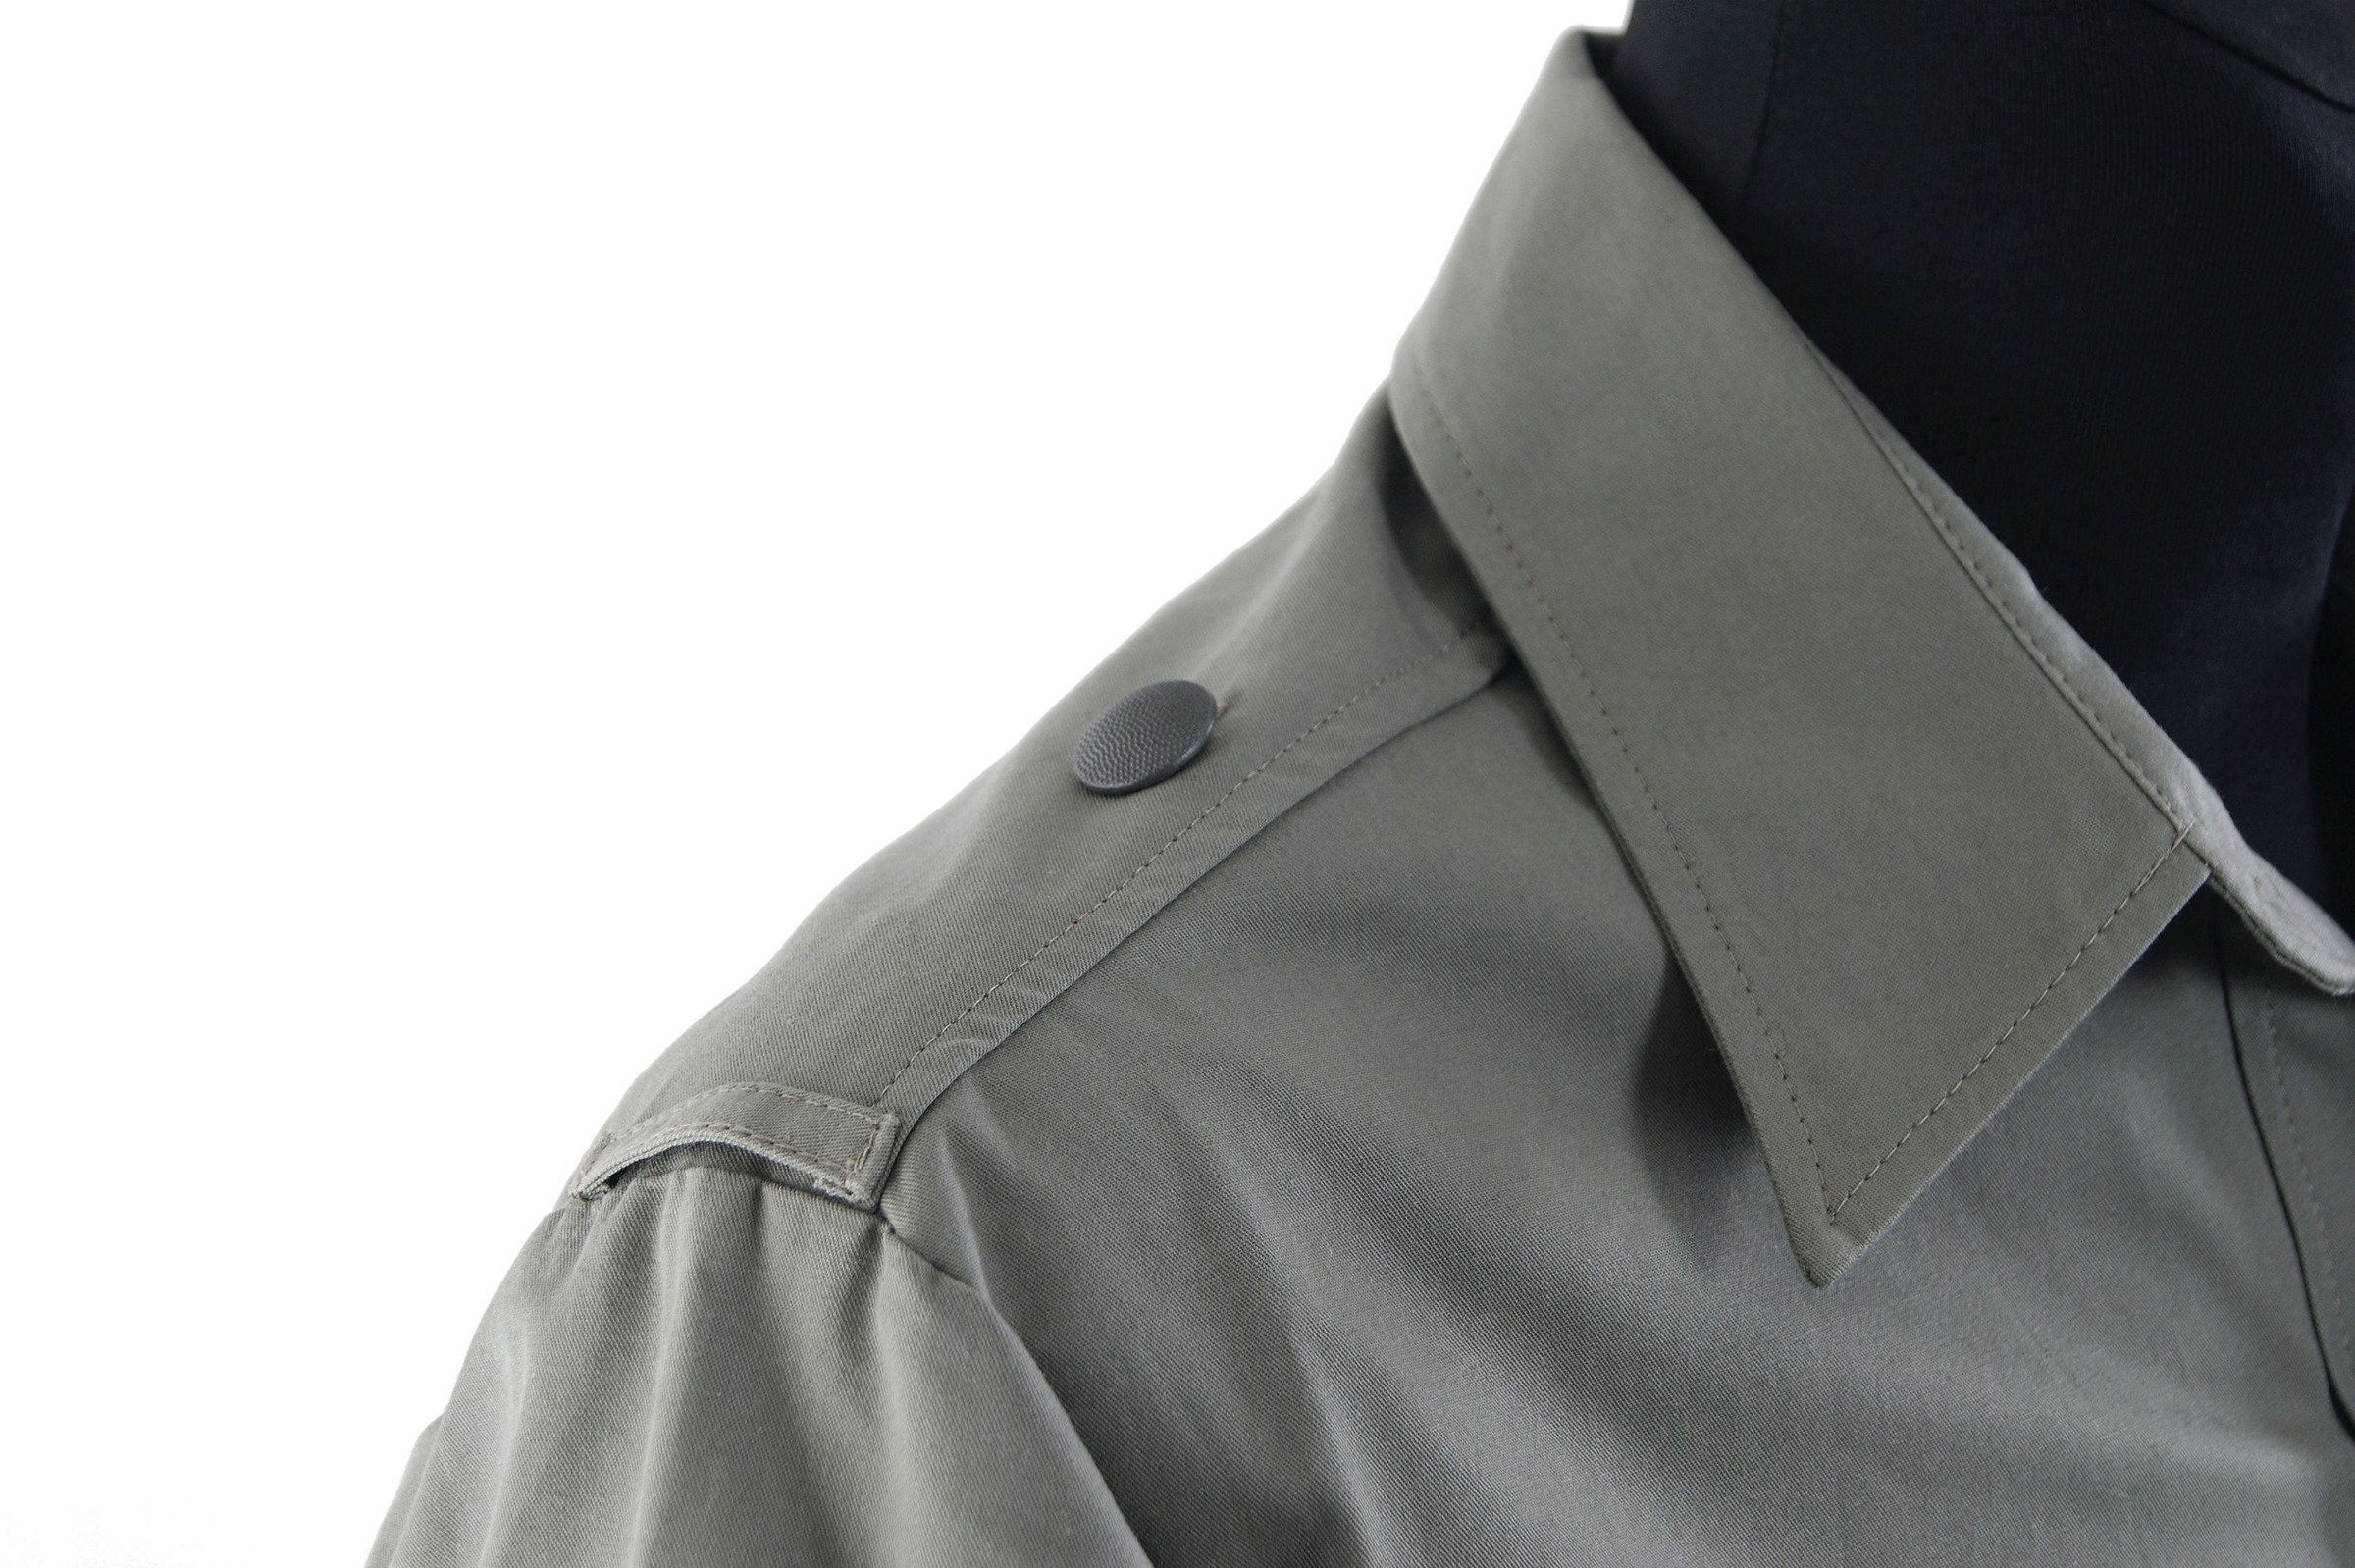 Hemd M43 - uniform shirt with buttons for shoulder boards - repro S ... d9bbd2e4fa